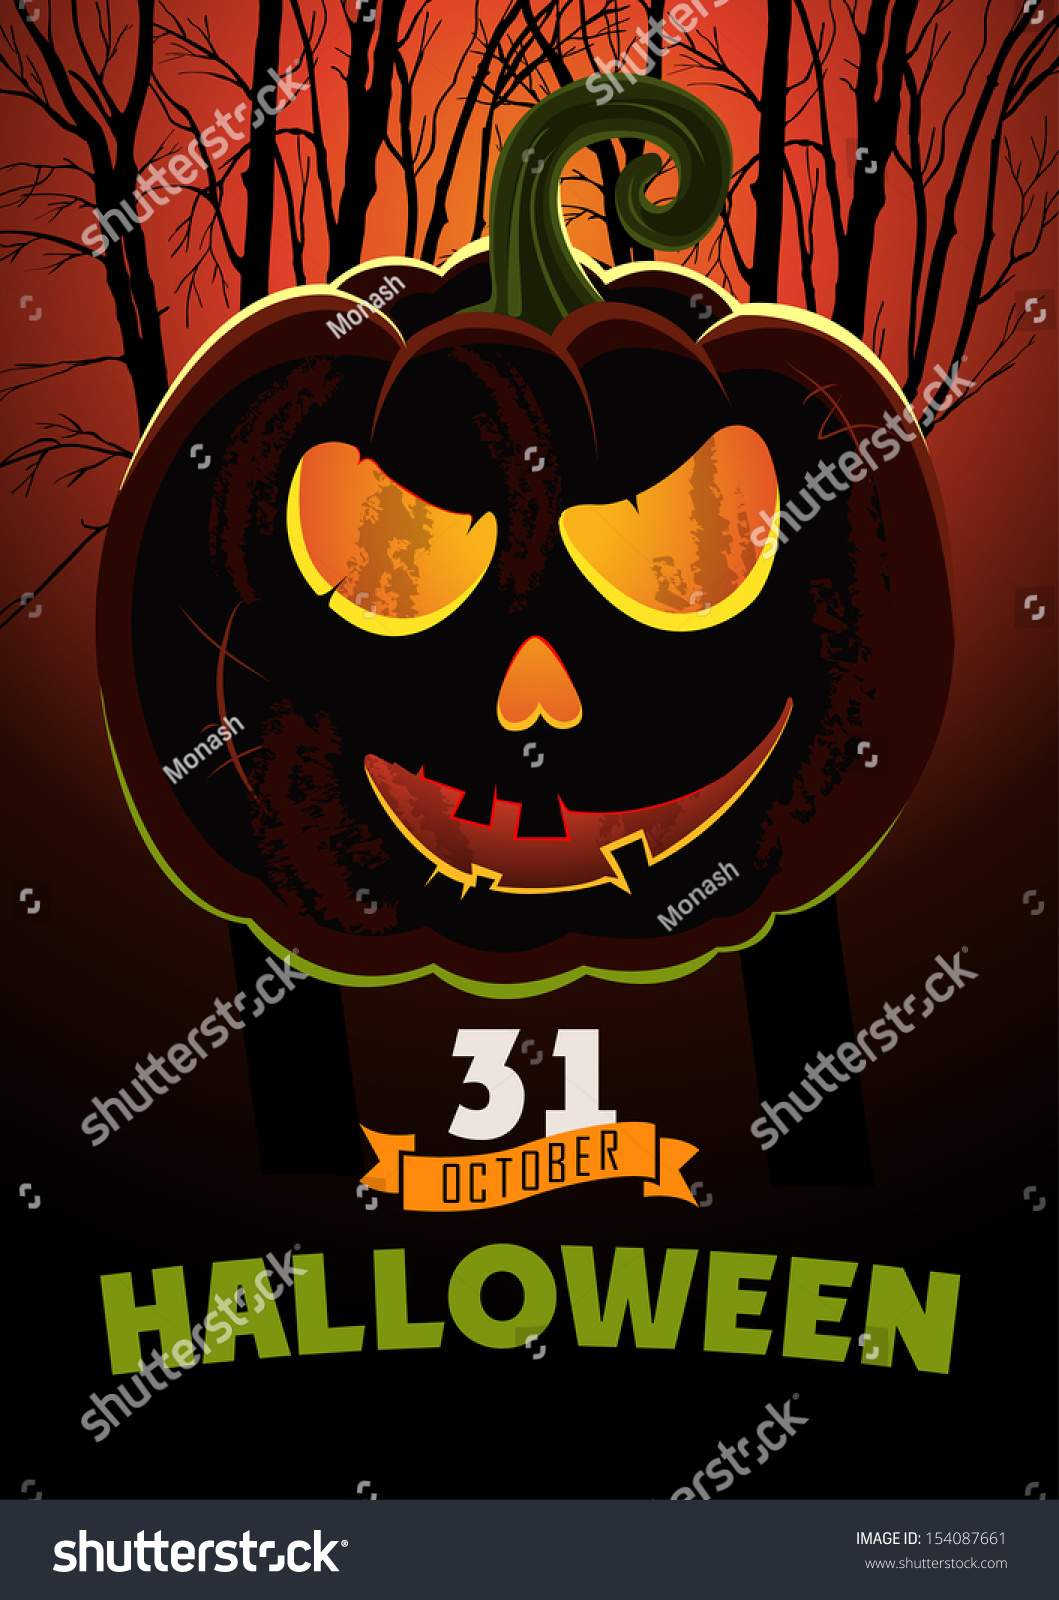 Halloween Party. Poster On Holiday With Pumpkin Design ...